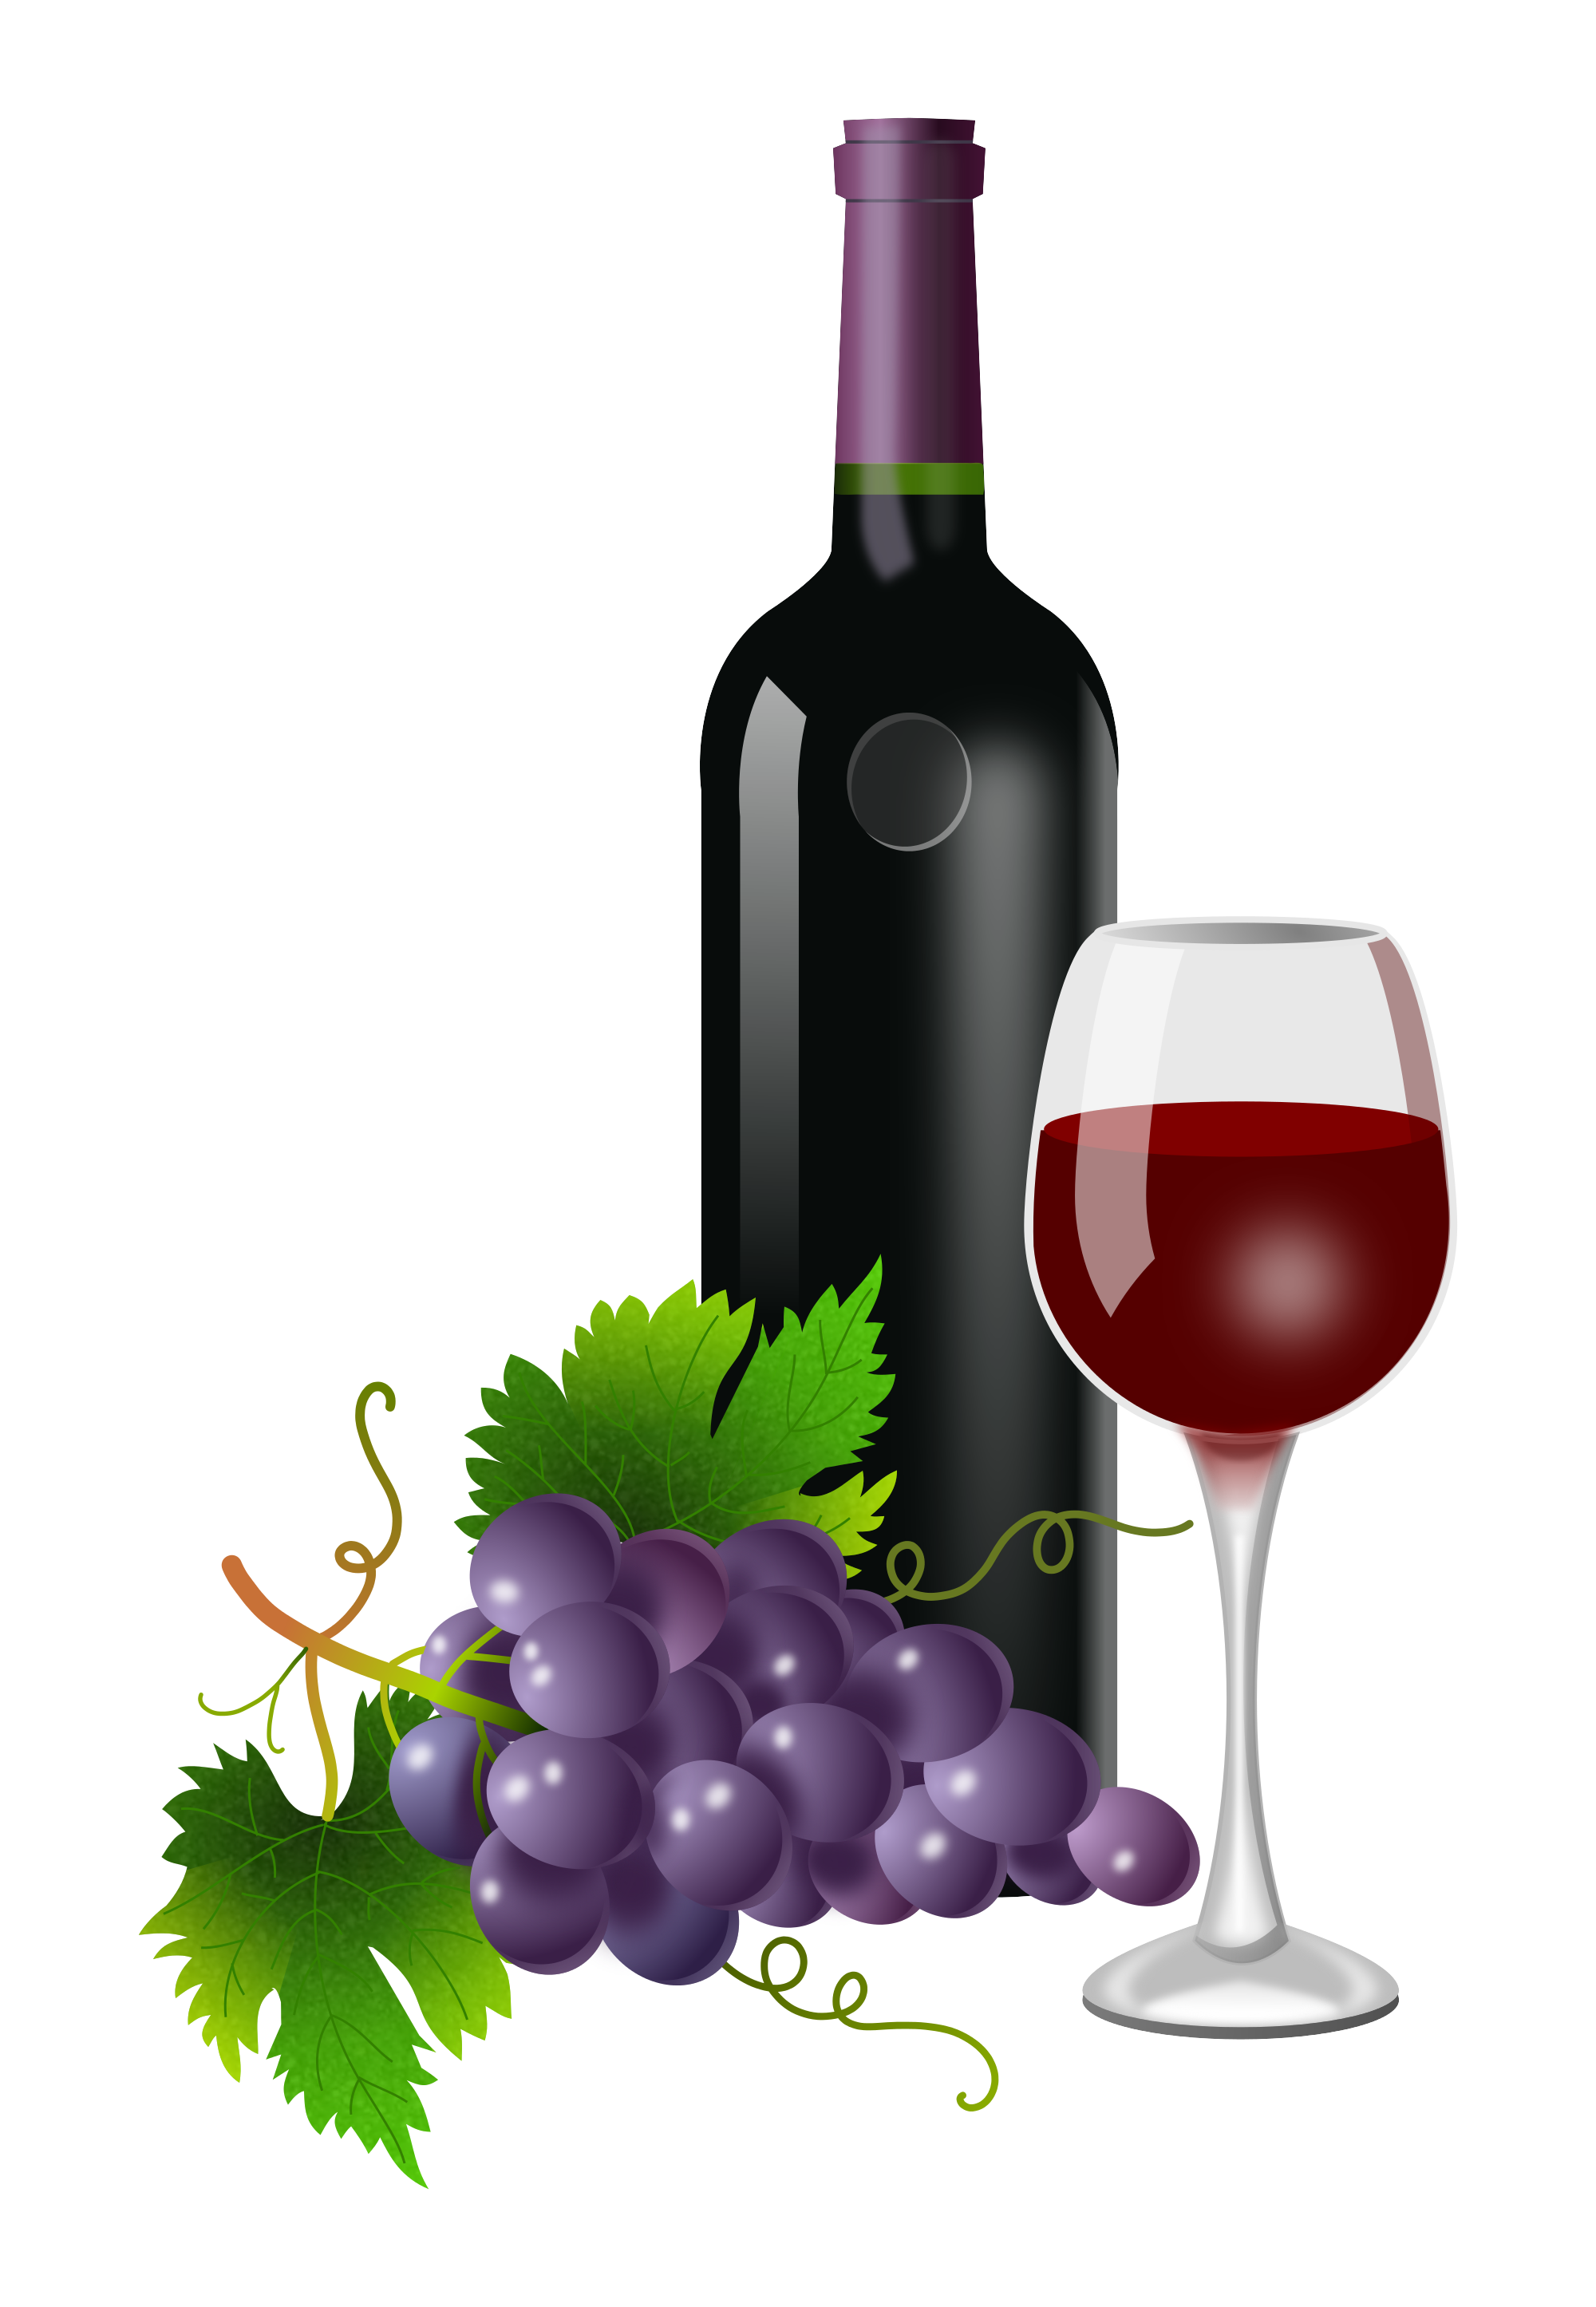 French clipart cheese grape, French cheese grape Transparent.